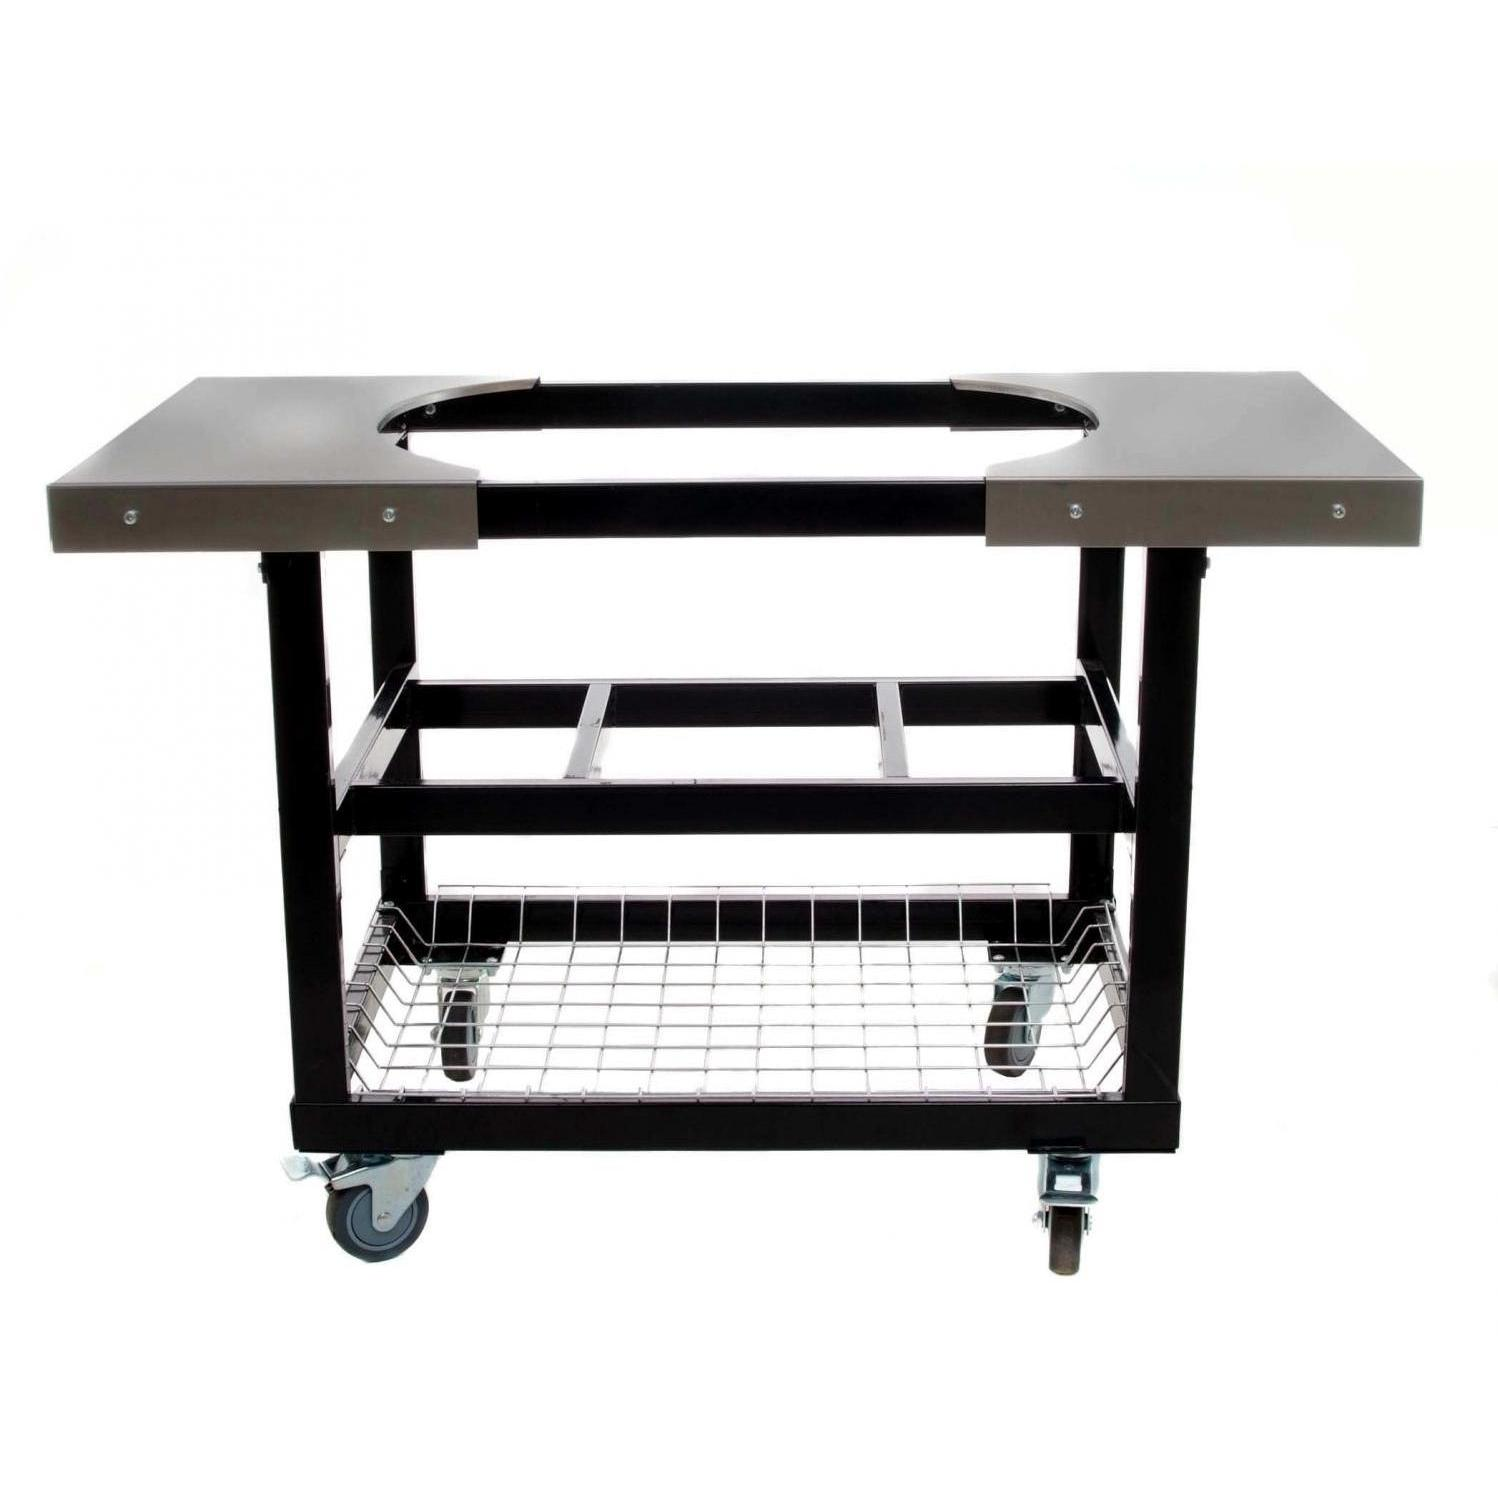 primo steel cart with stainless side tables for oval outdoor table bbq large guys cherry wood and chairs barn door kitchen cabinets couch legs weathered furniture usb port two